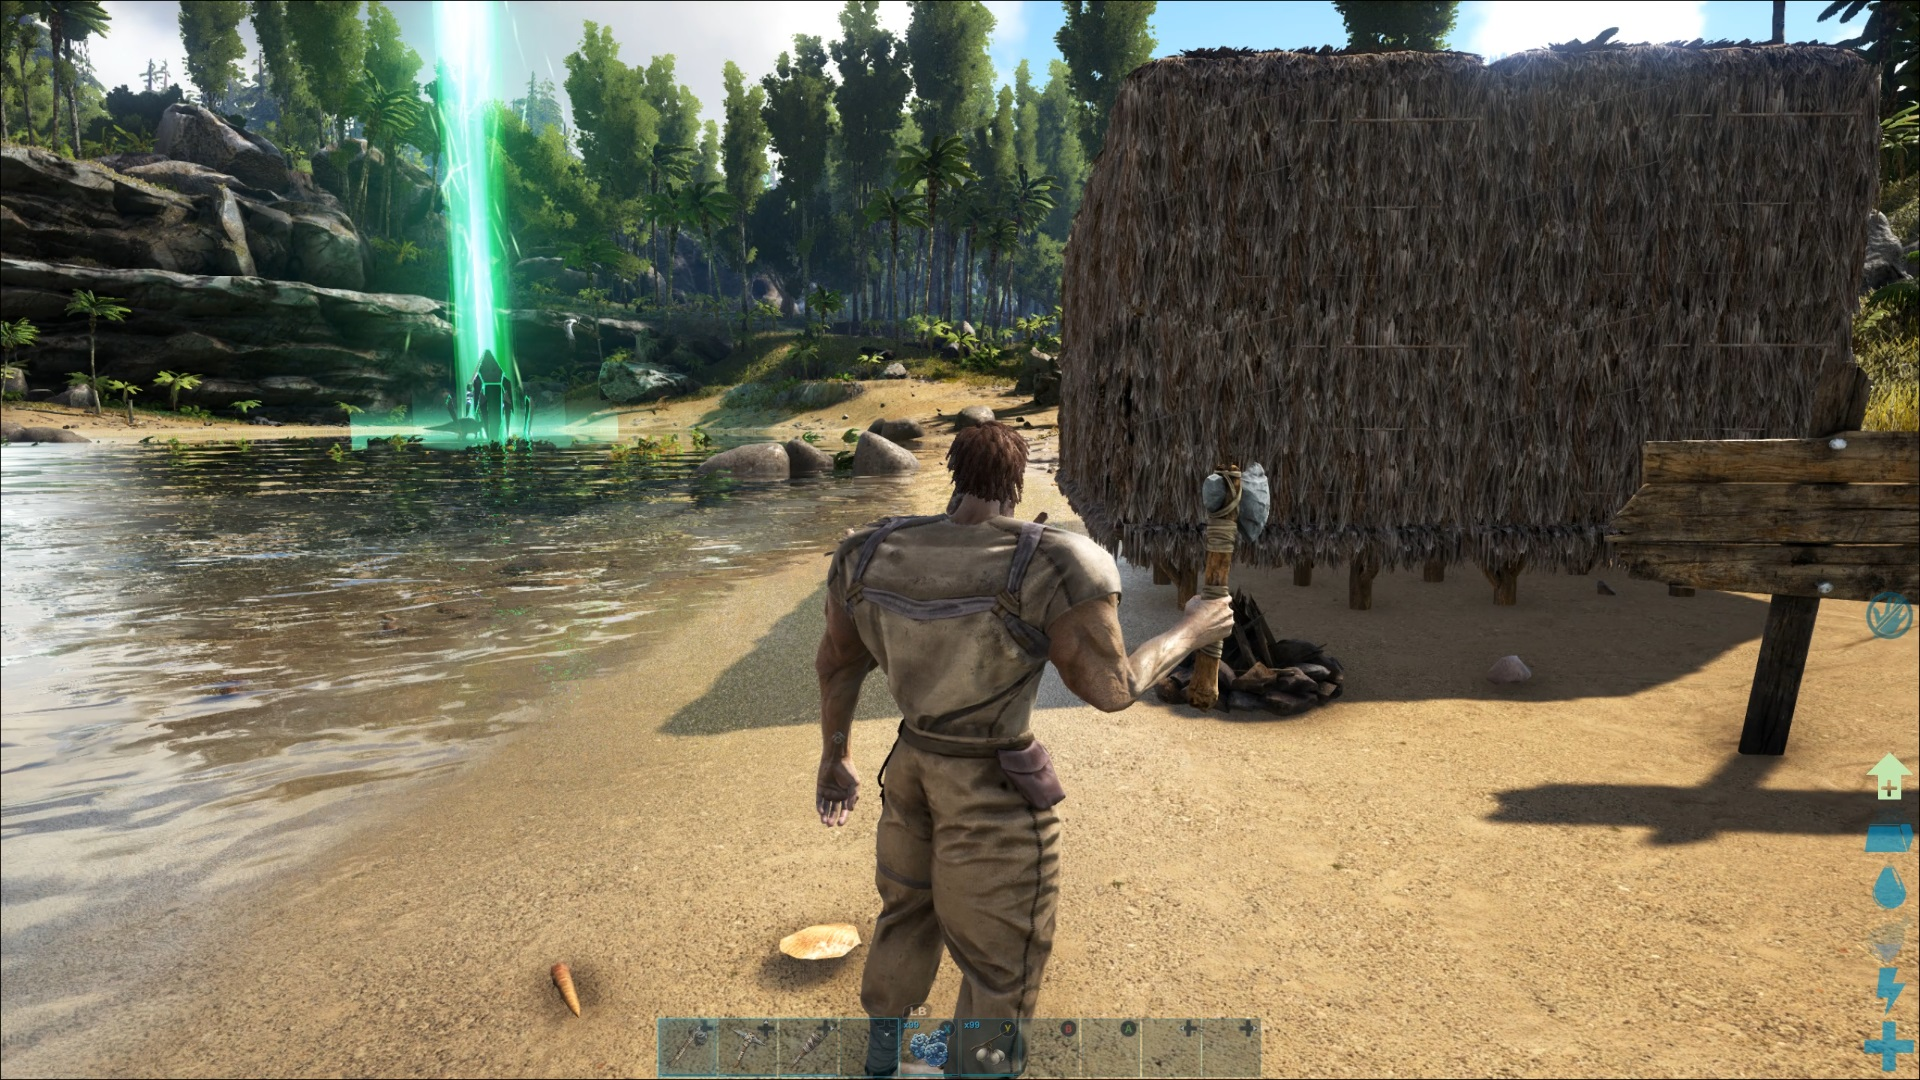 156a23aece148a731be81a33bd226ffc - 【ARK Survival Evolved】序盤攻略【究極の恐竜時代を生き抜く!】